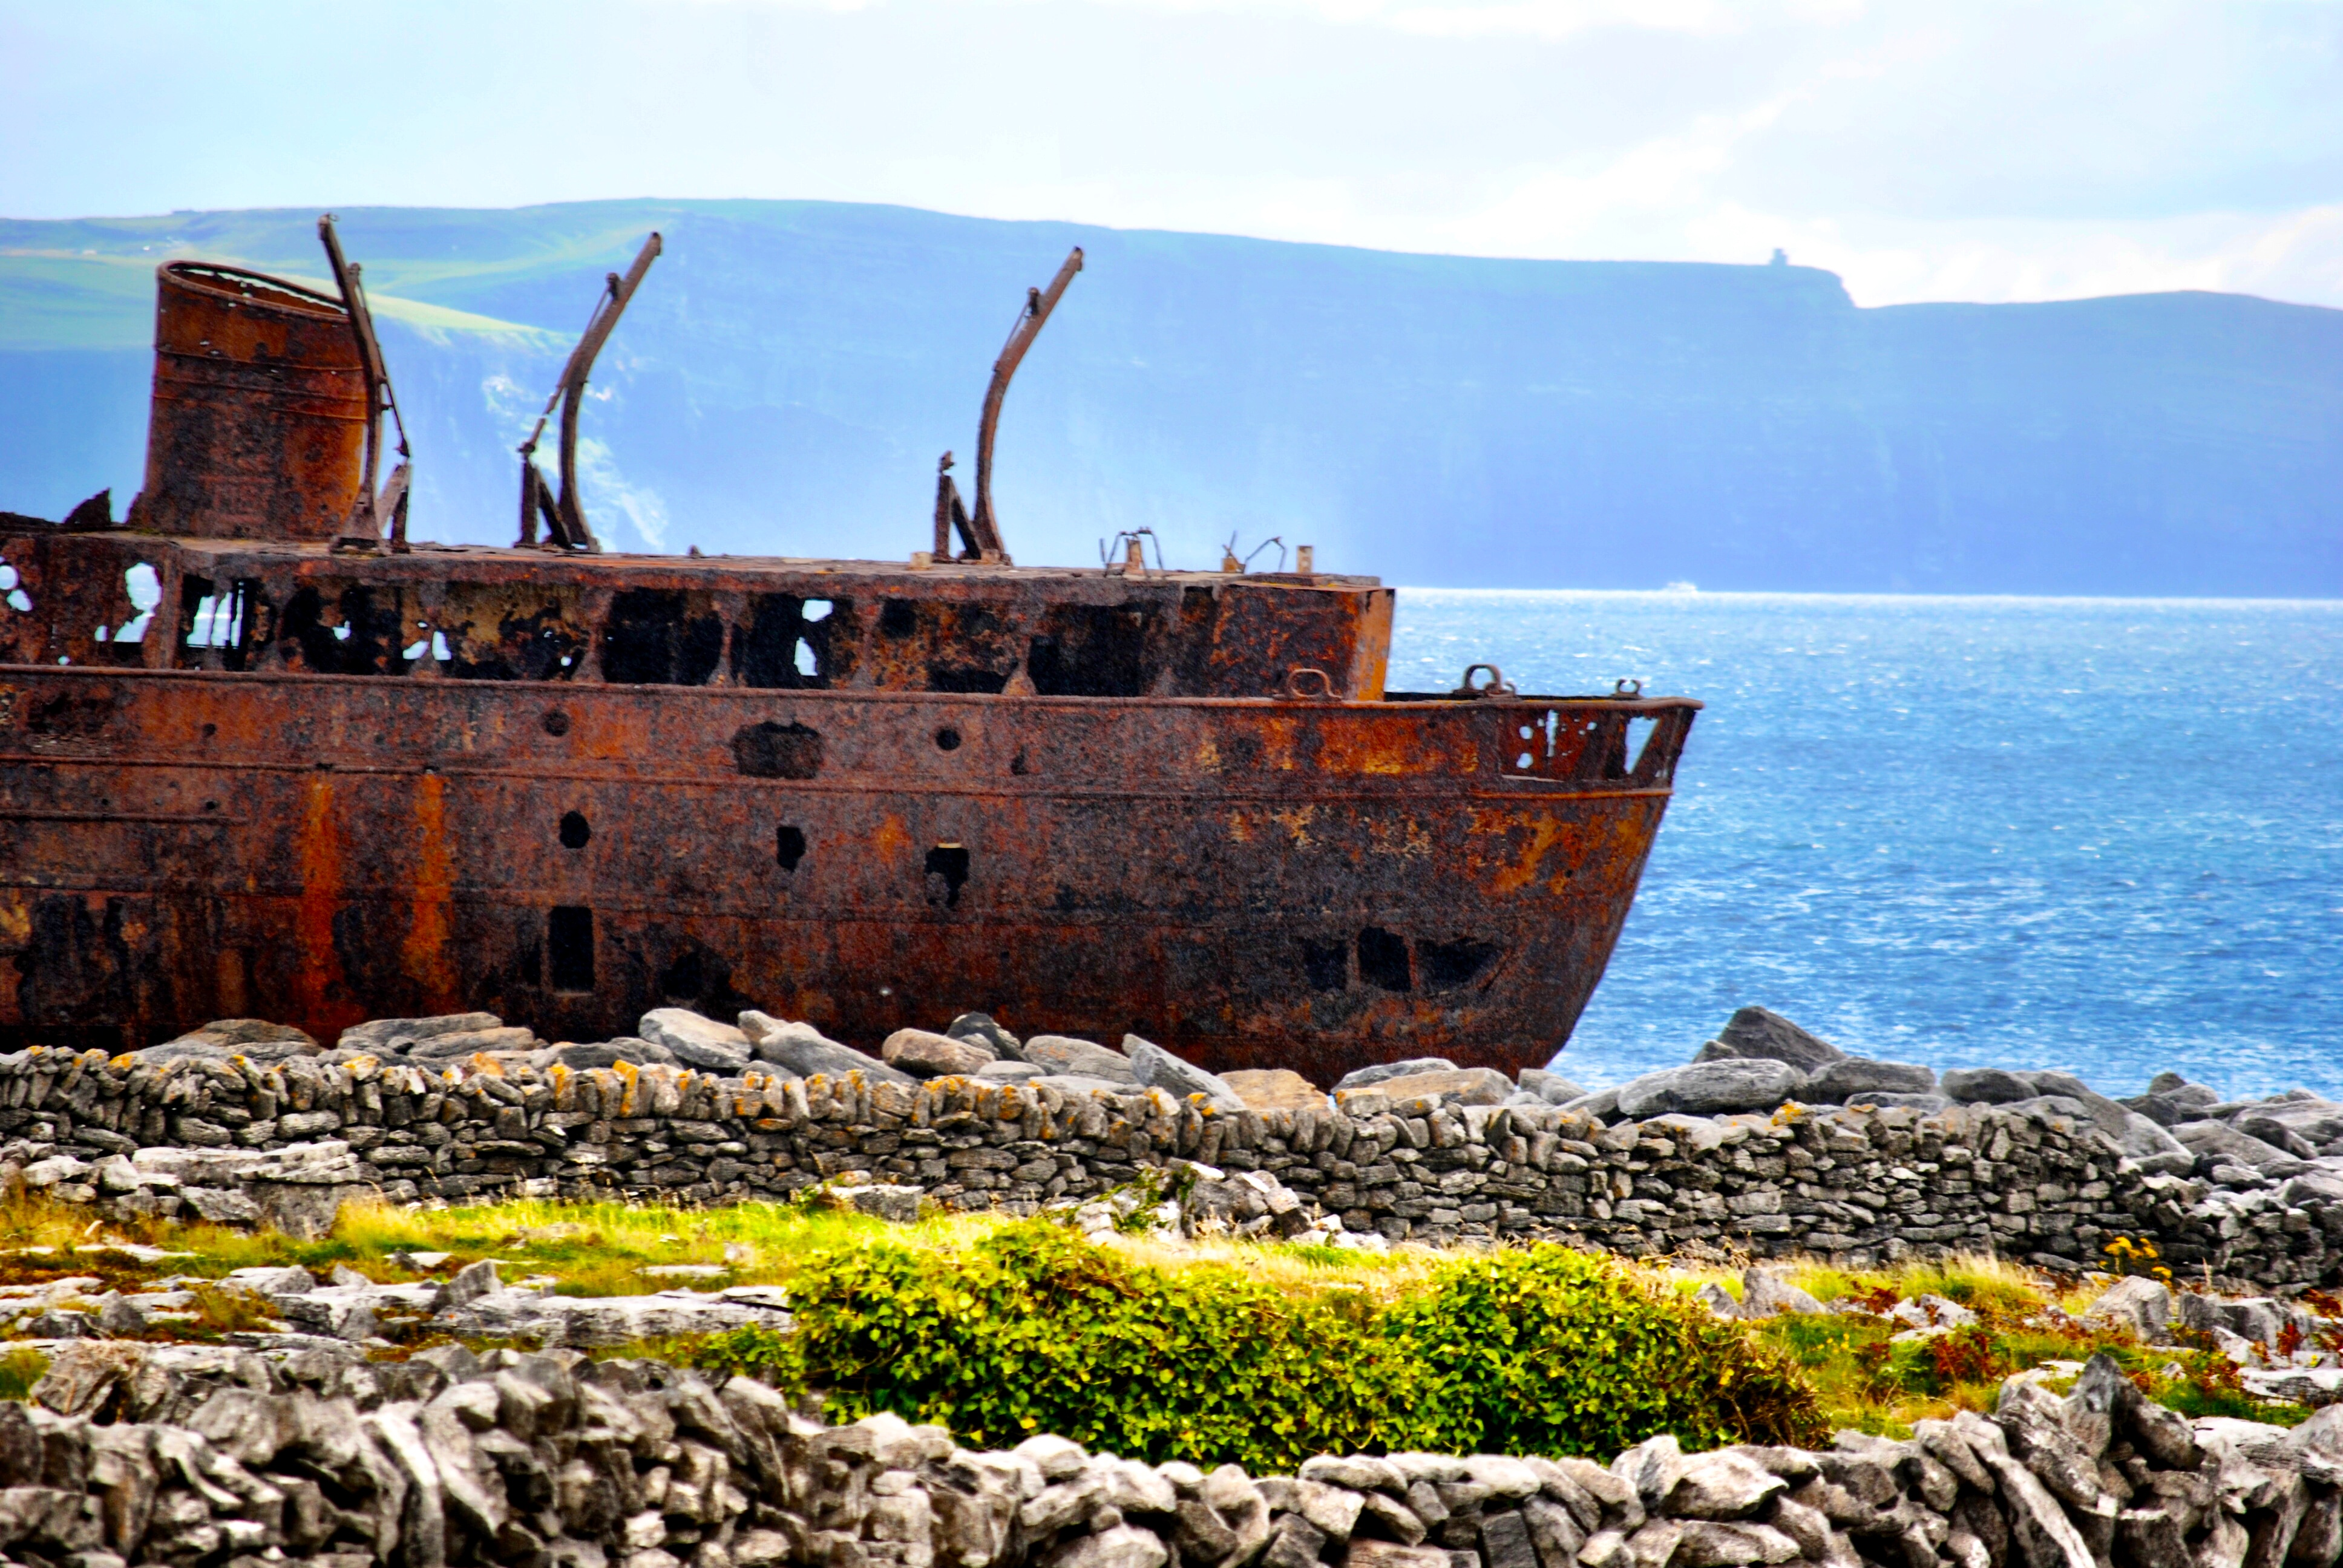 Plassey Shipwreck - Aran Islands, Ireland